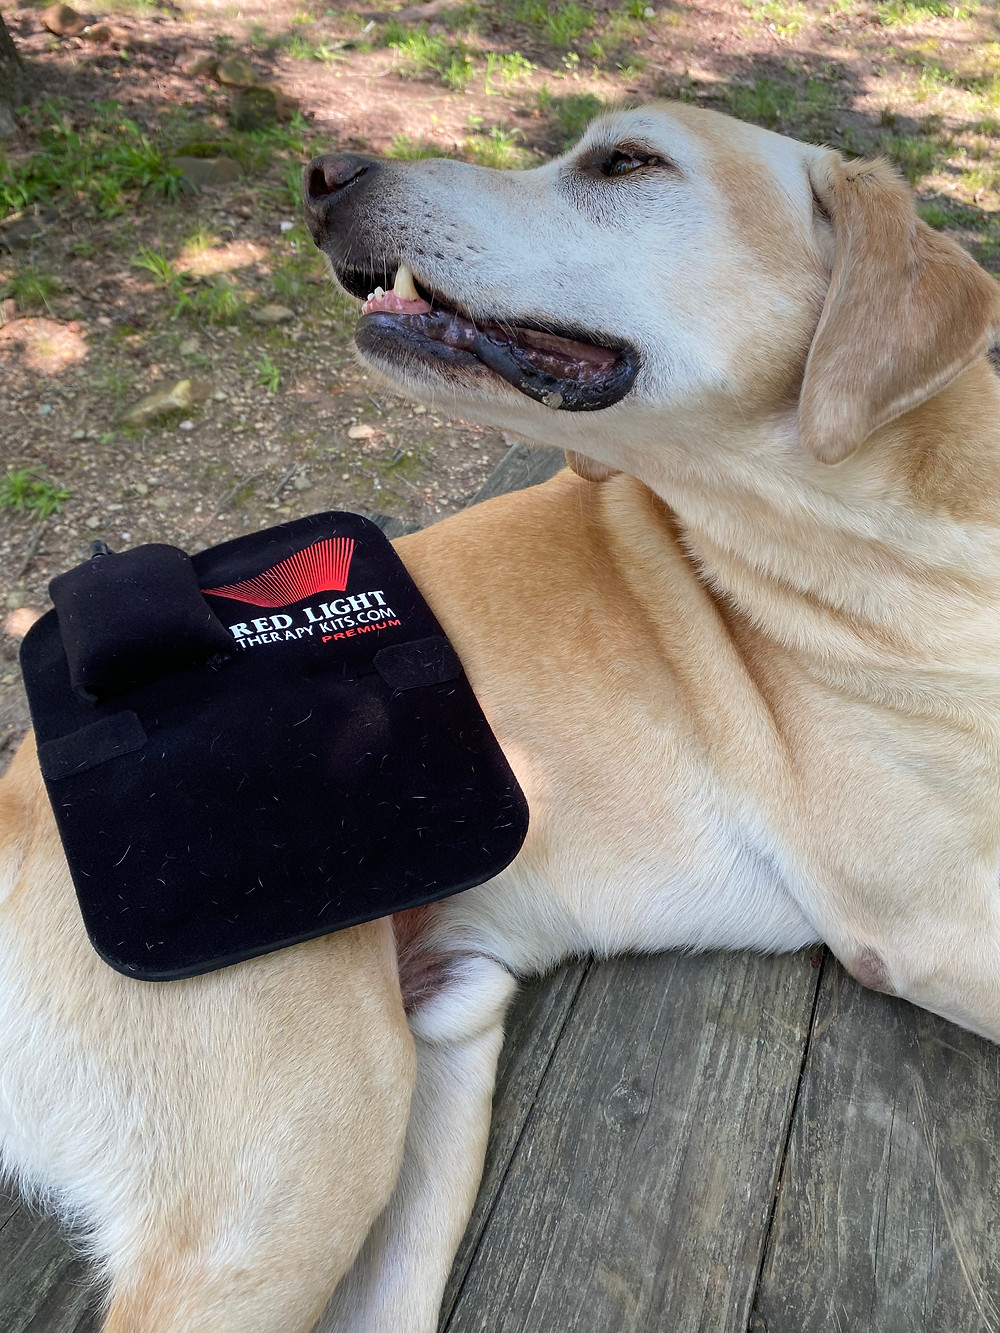 dog receiving red light therapy to help overcome kennel cough